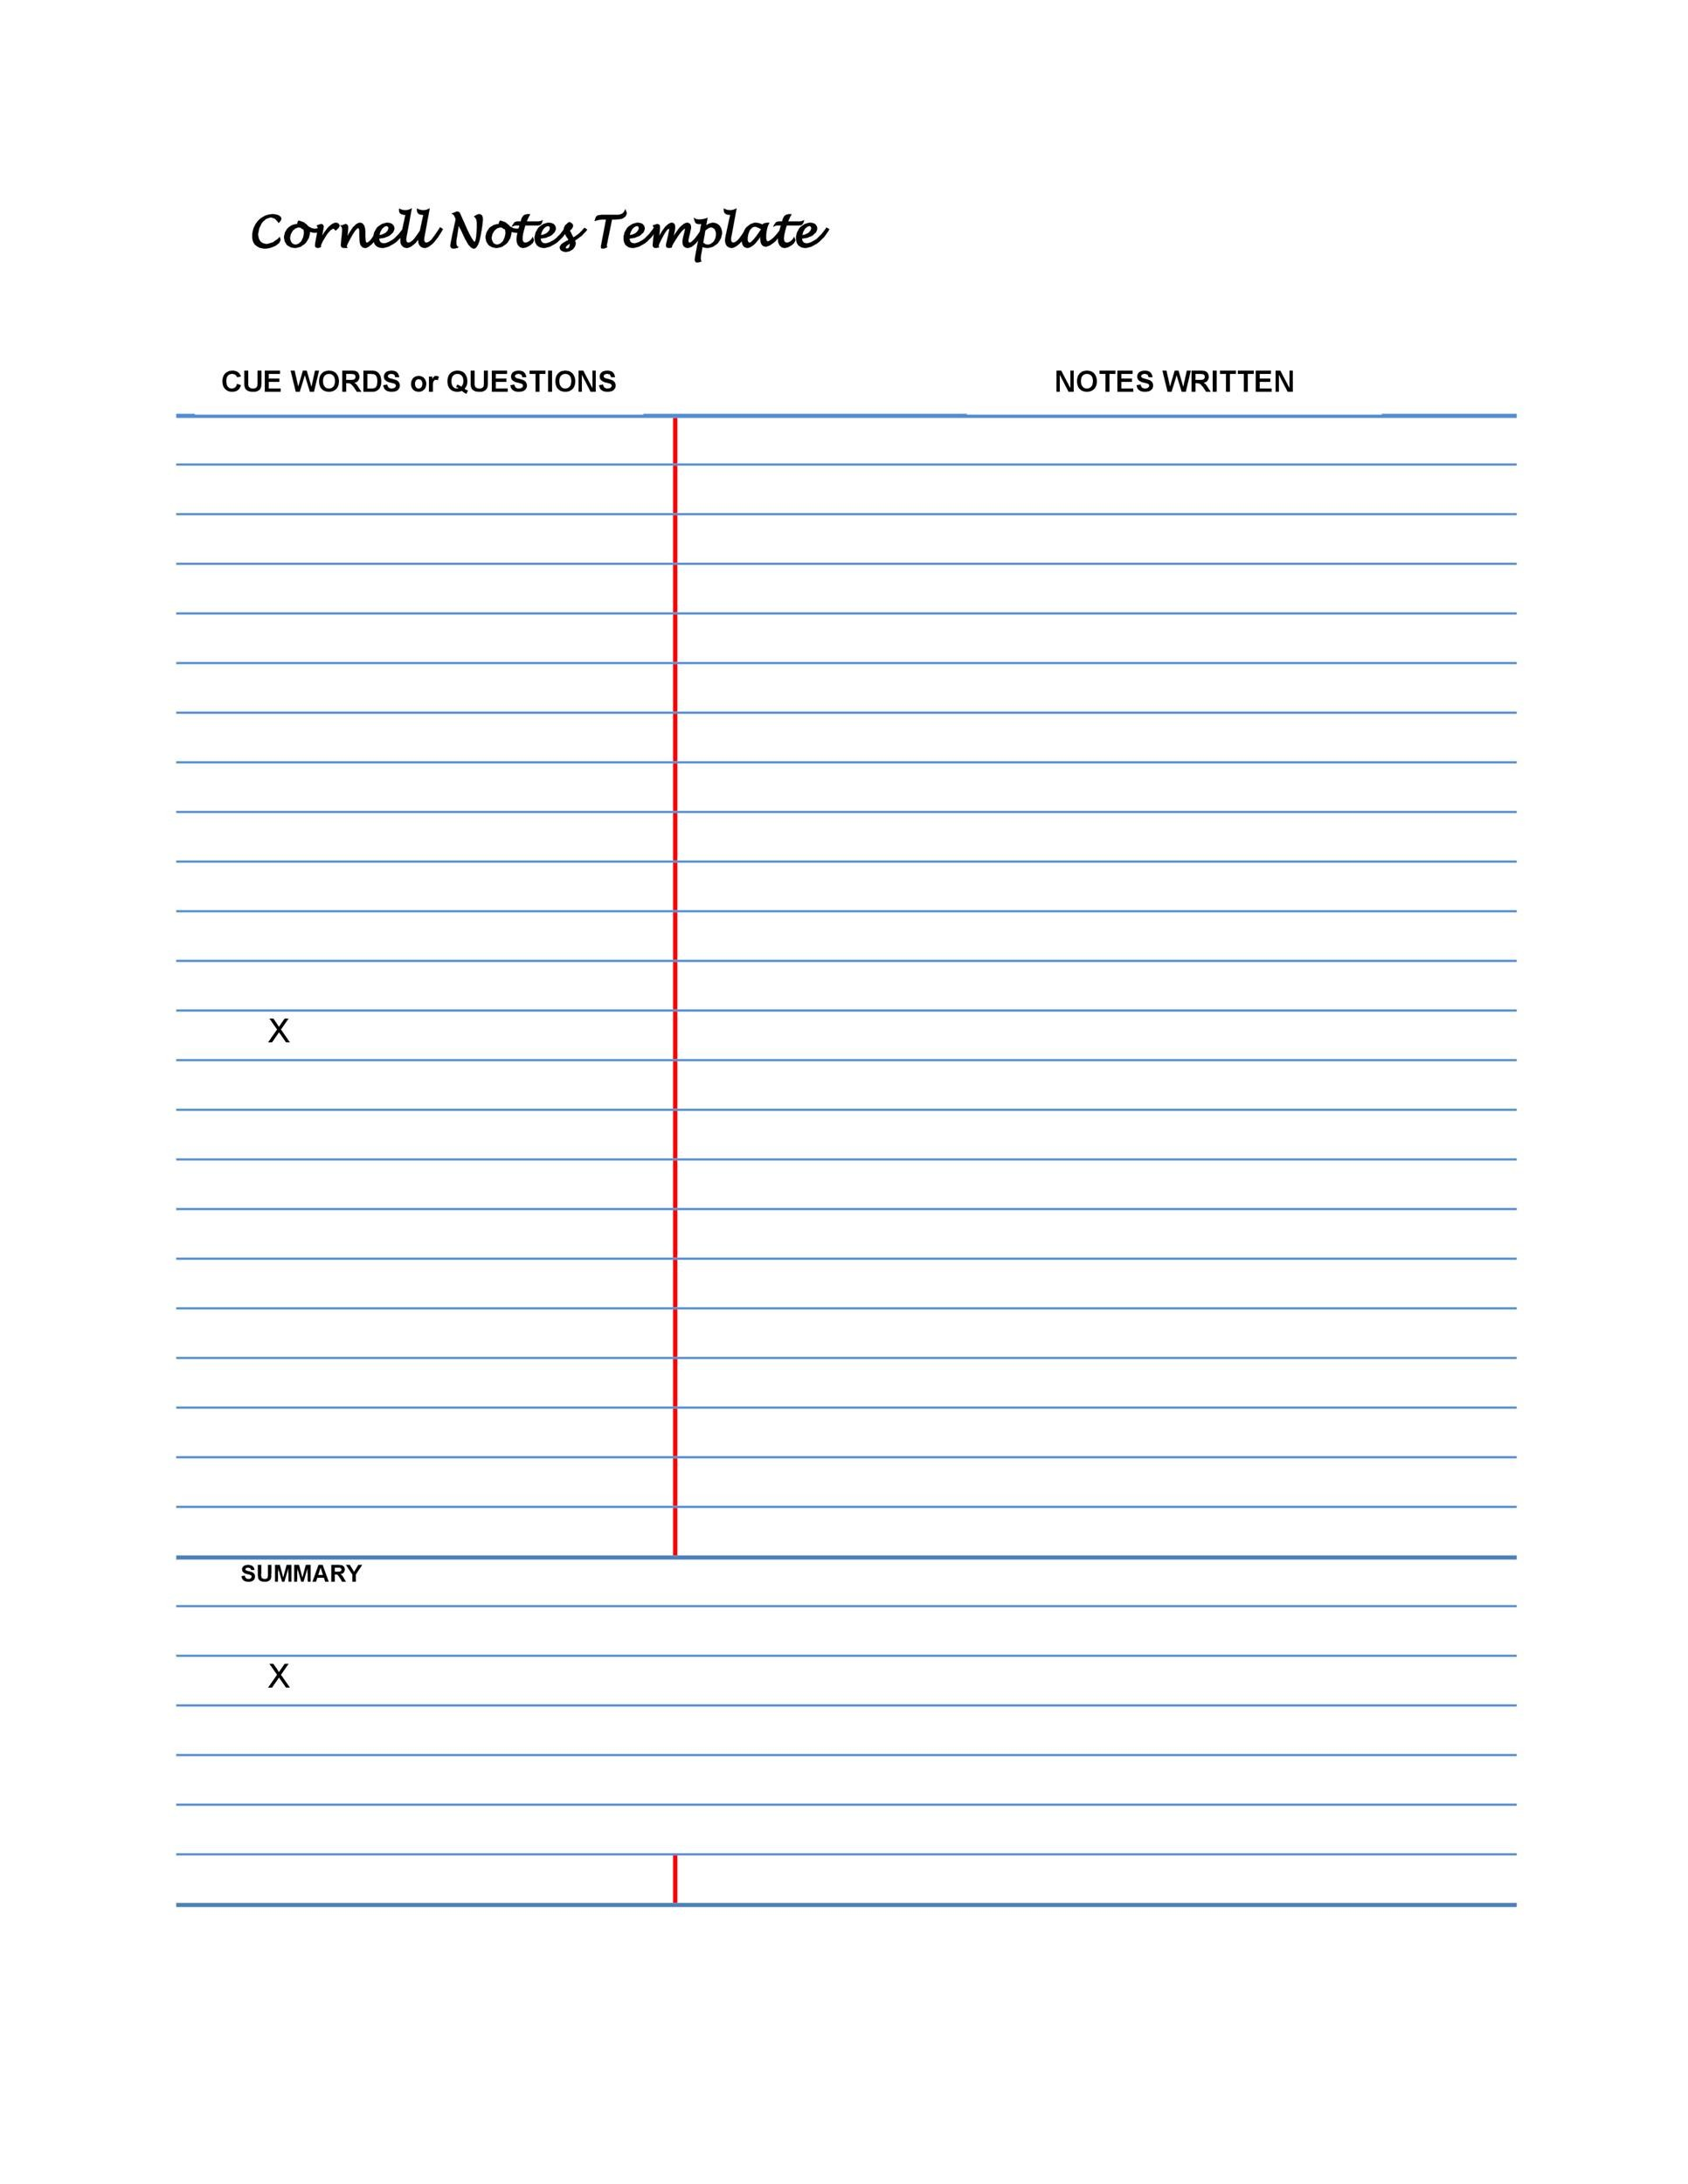 36 Cornell Notes Templates  Examples Word, PDF - Template Lab - Notes Template Word